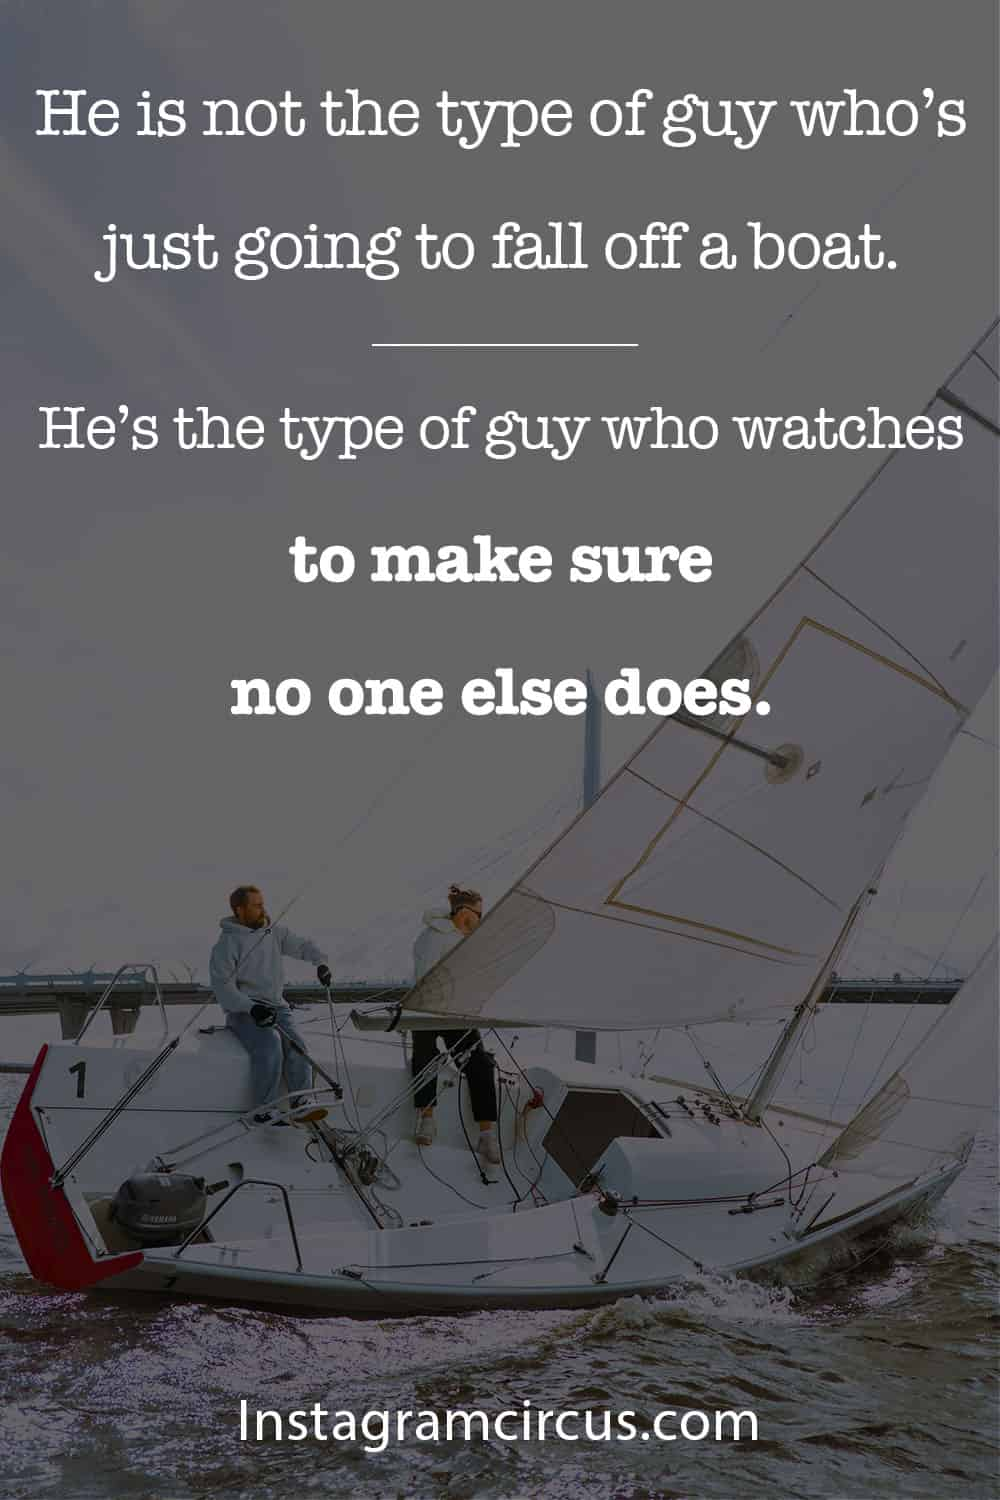 He is not the type of guy who's just going to fall off a boat, he's the type of guy who watches to make sure no one else does.